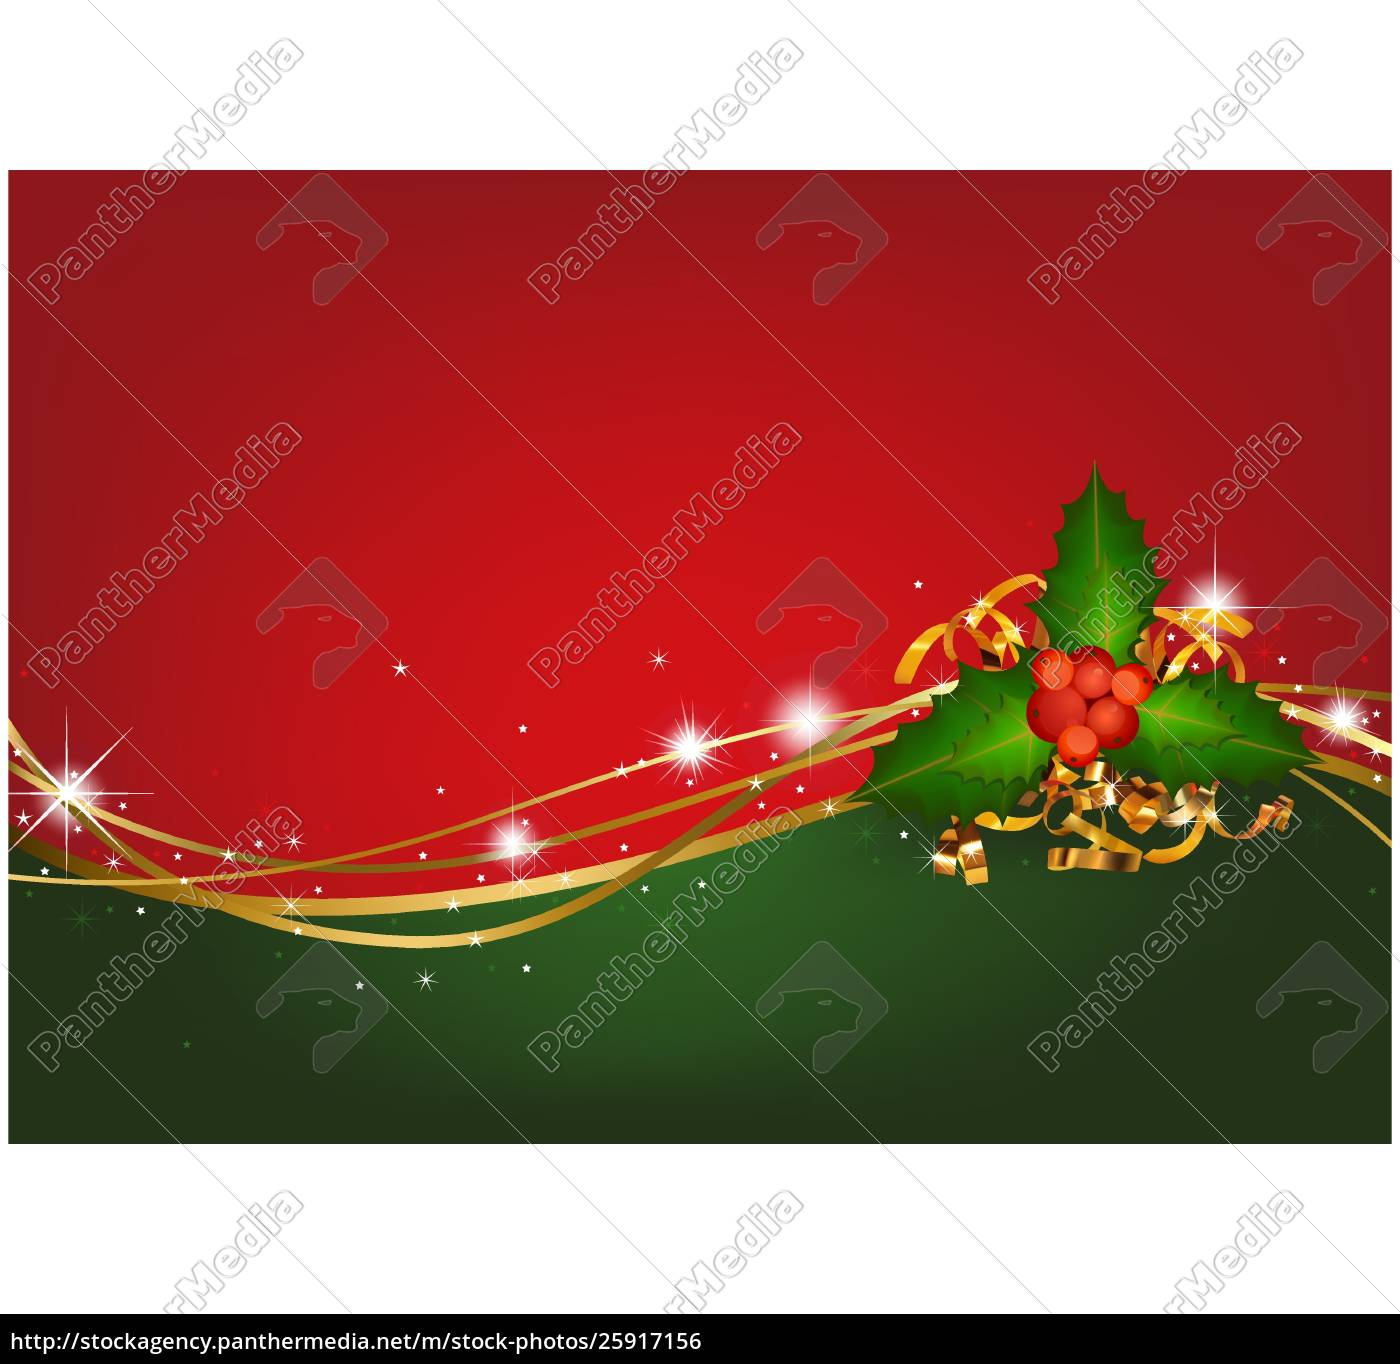 Royalty Free Vector 25917156 Christmas Background With Christmas Holly